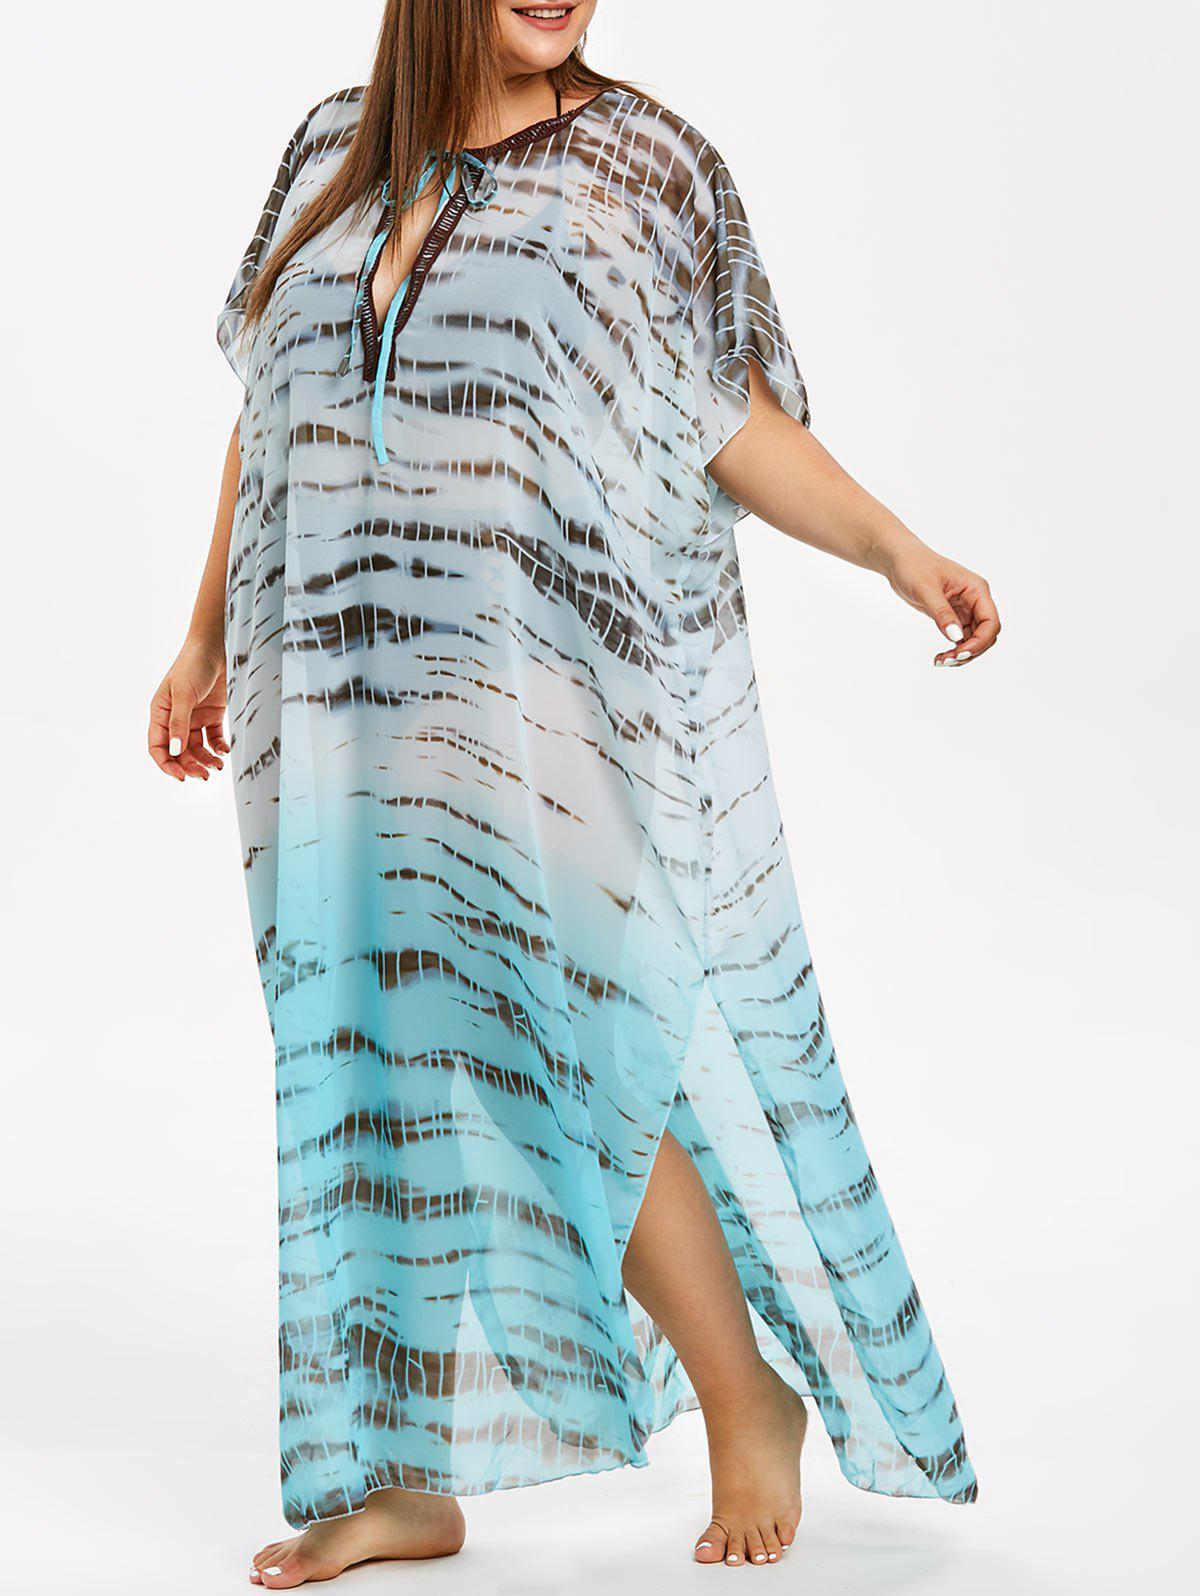 c3818ff3098c7 Ombre Plus Size See Through Cover Up - One Size. rosegal